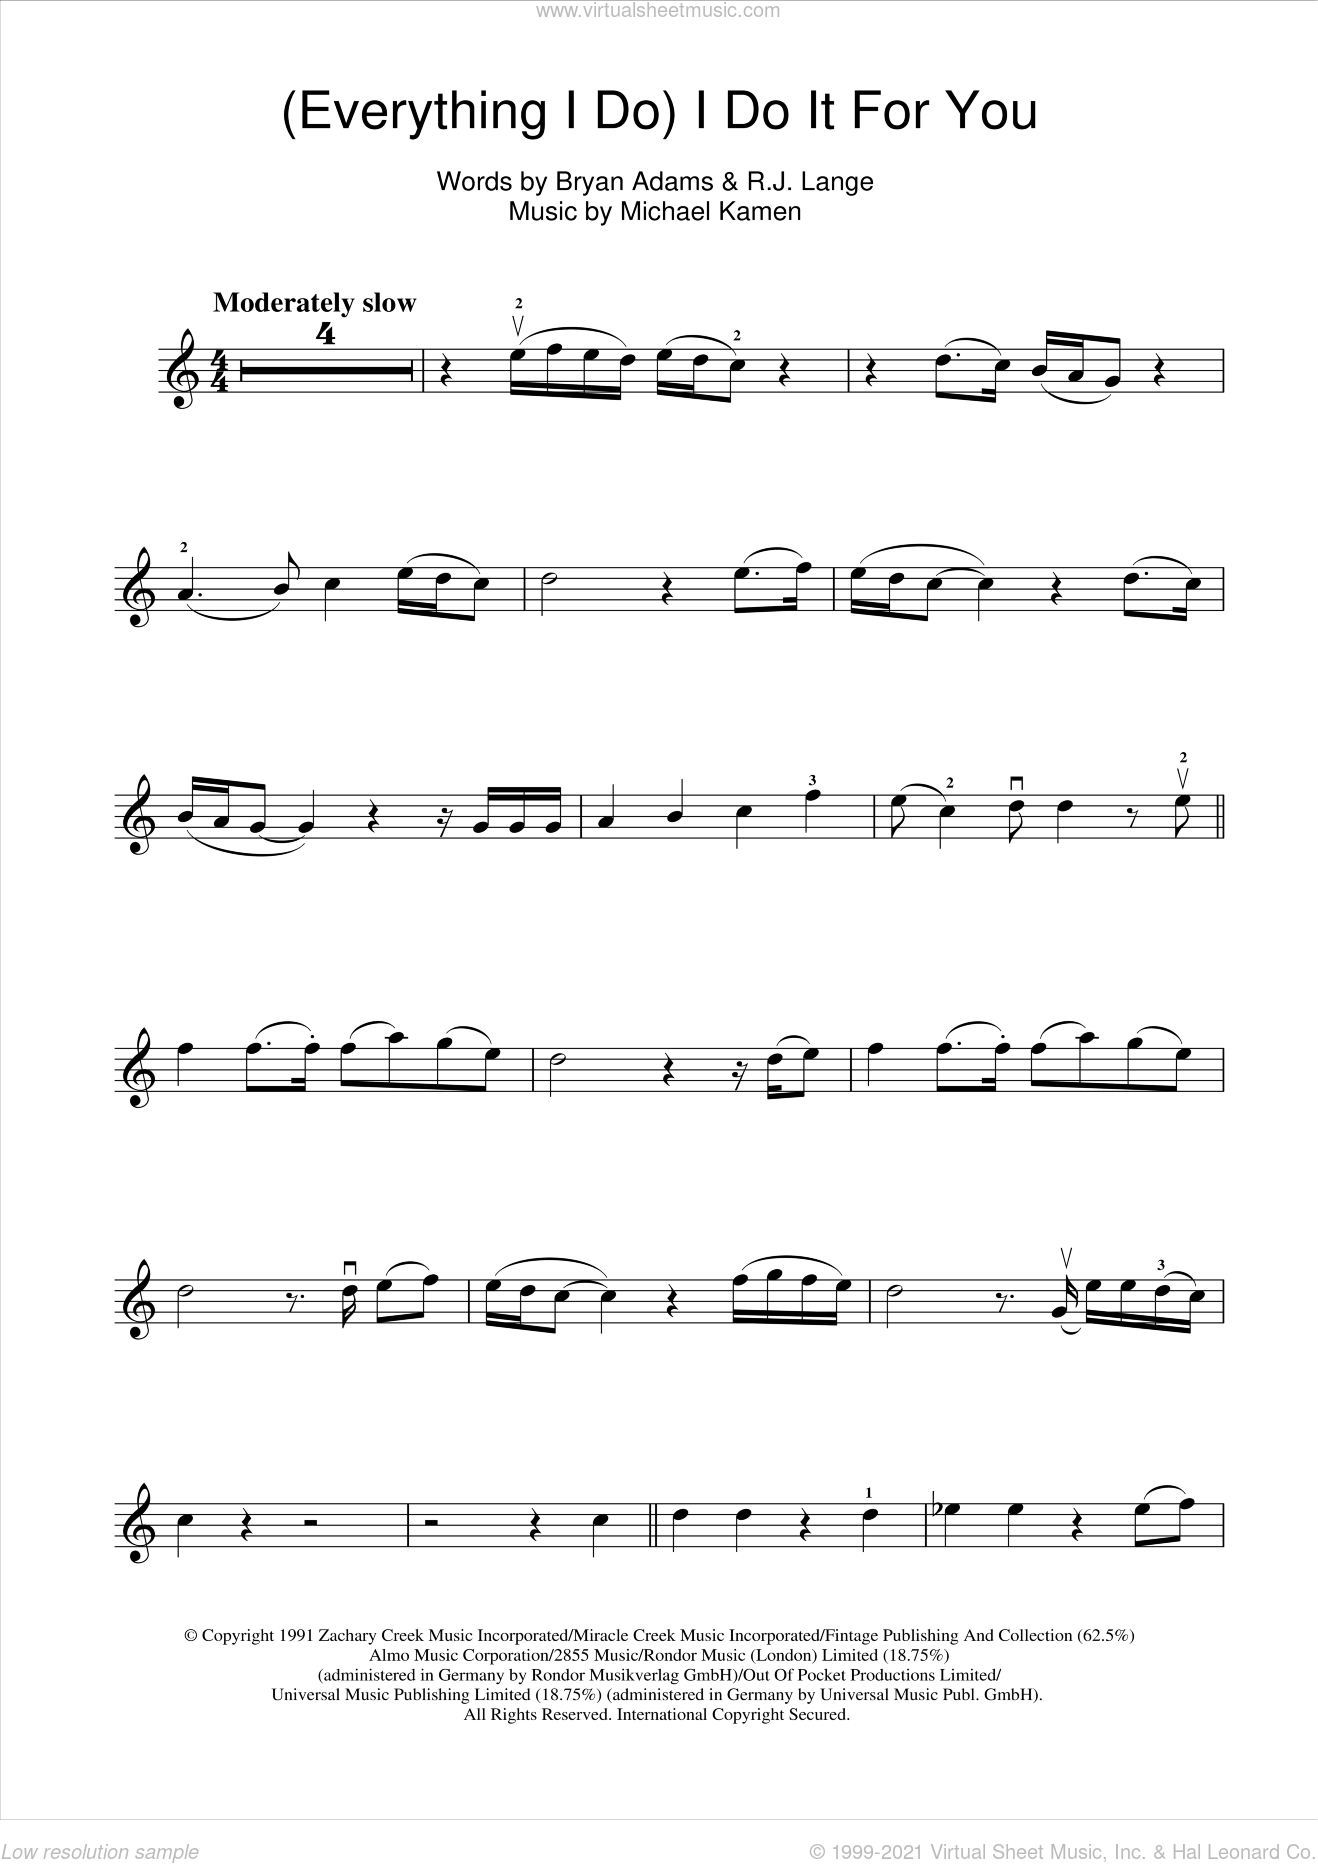 (Everything I Do) I Do It For You sheet music for violin solo by Bryan Adams, Michael Kamen and Robert John Lange, intermediate skill level